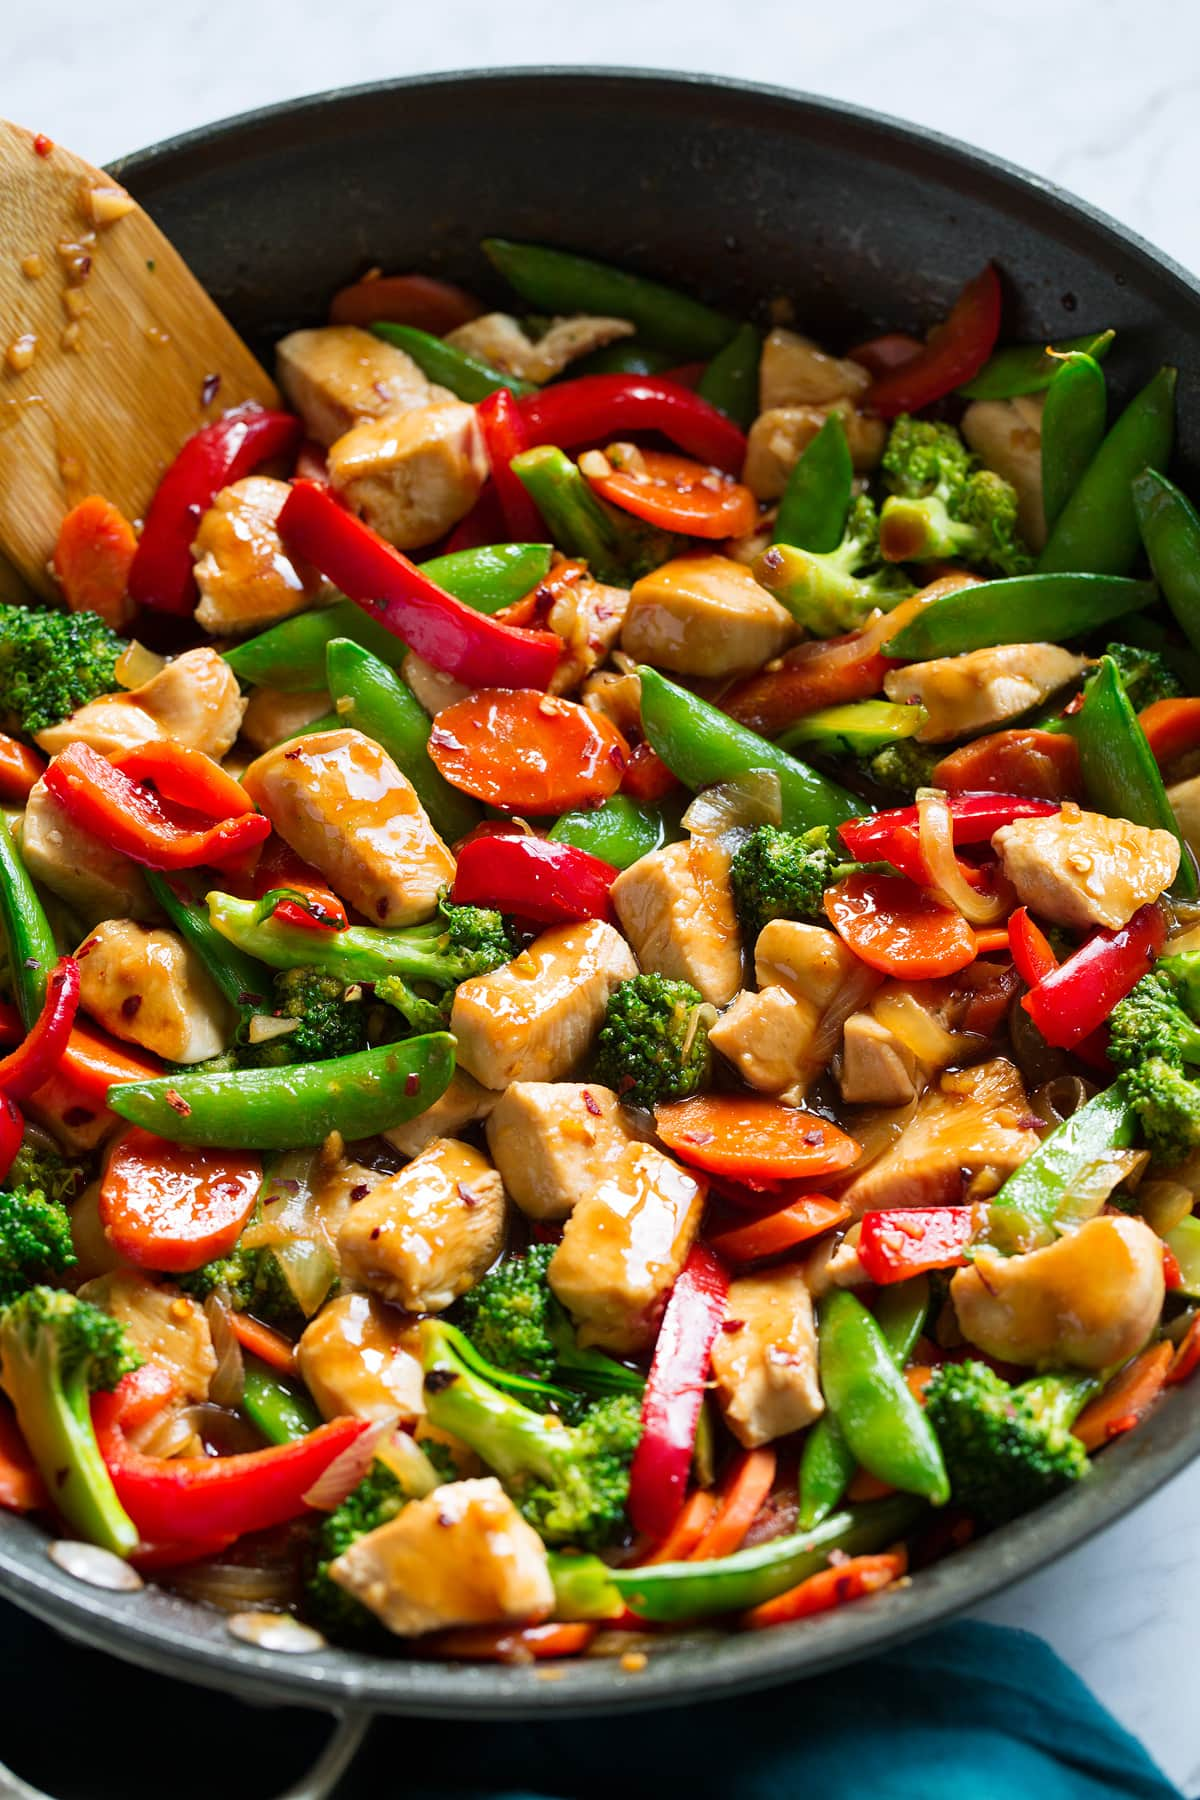 Close up image of chicken and vegetable stir fry in a skillet.